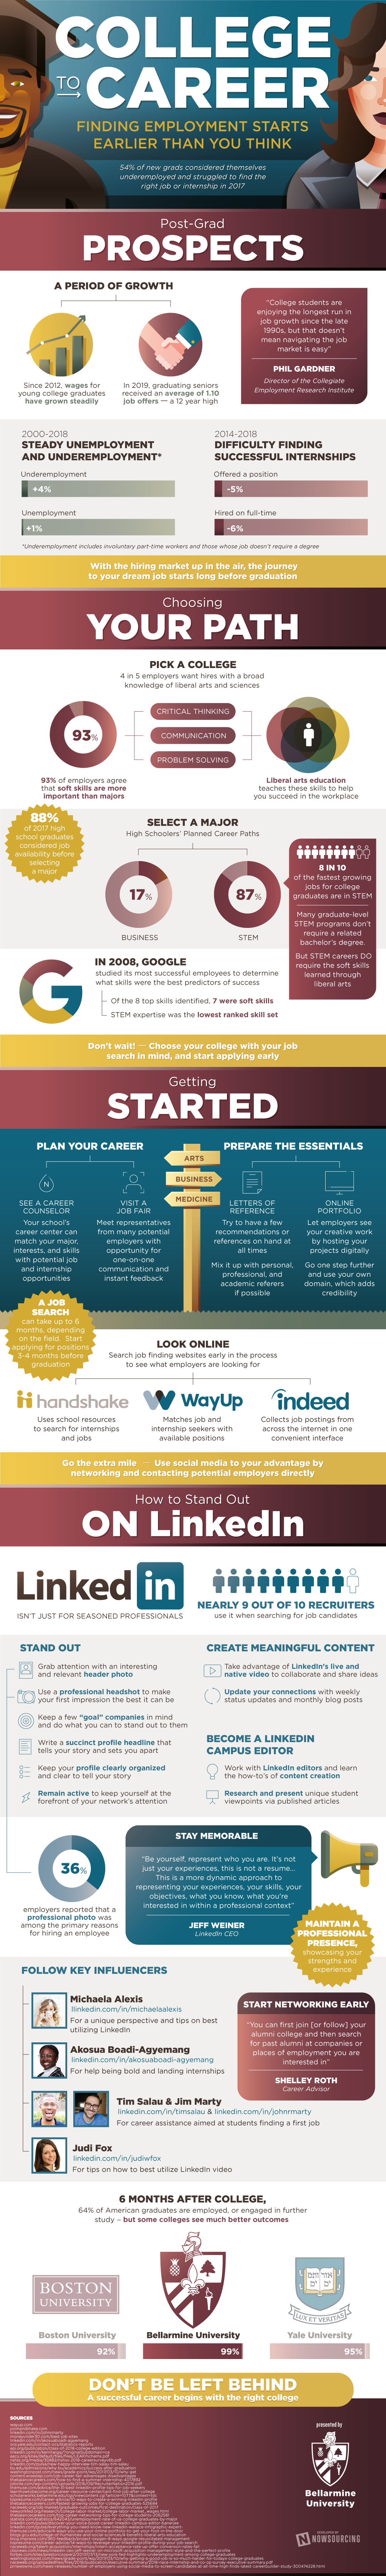 Give Your Career a Head Start #infographic